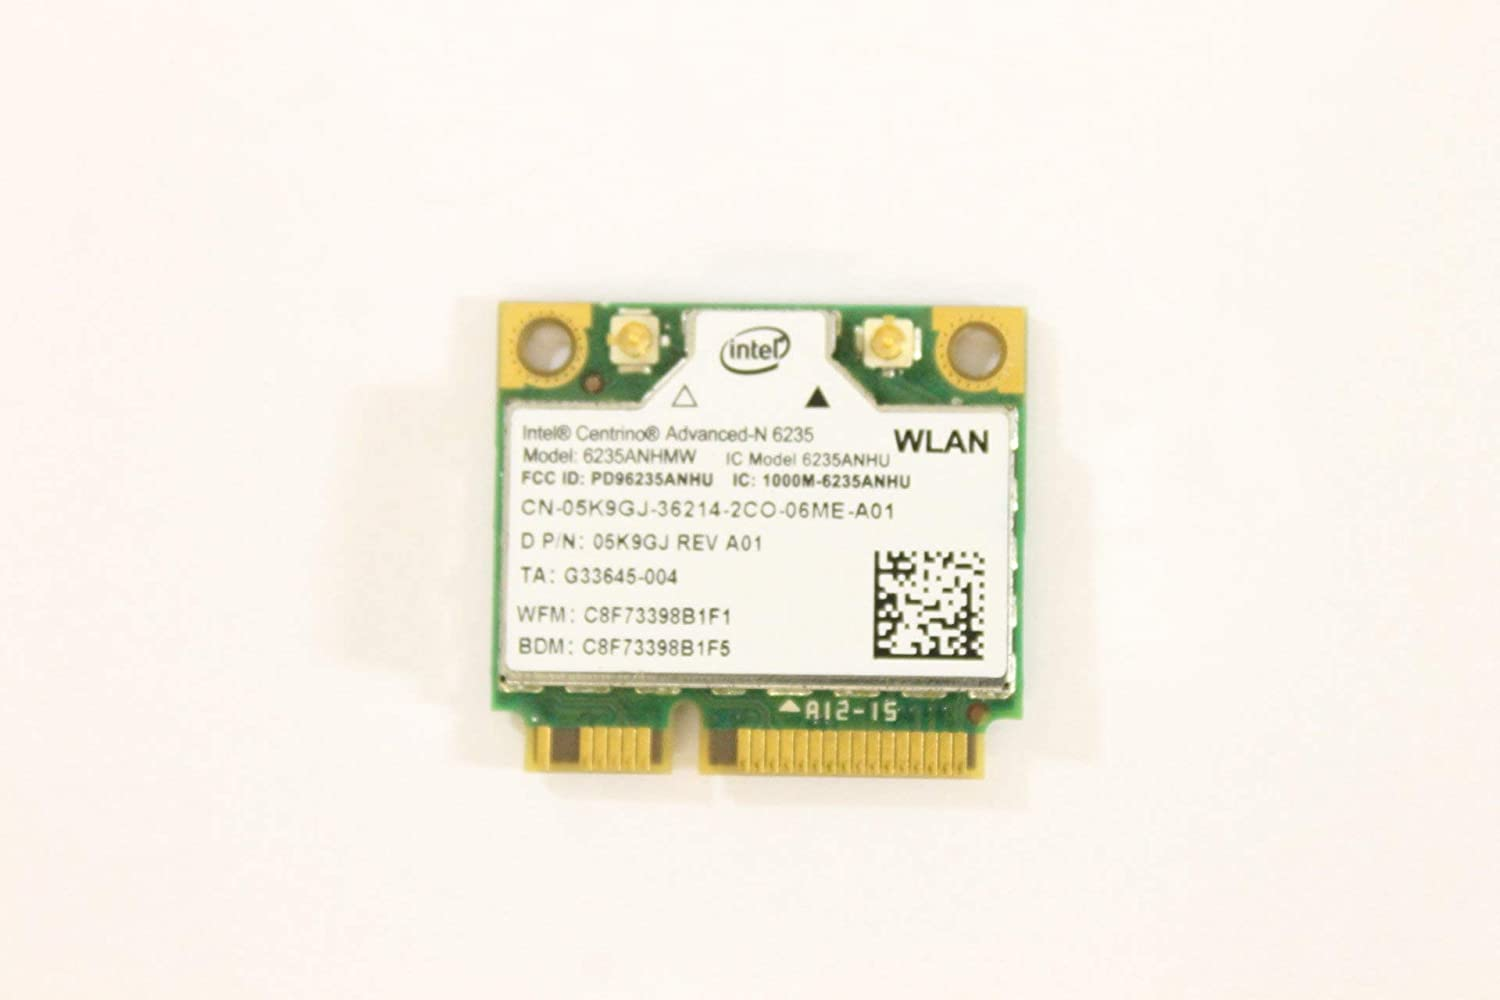 Dell Mini PCI Express Half Height 5K9GJ WLAN WiFi 802.11n Wireless Card 6235ANHMW Inspiron 5521